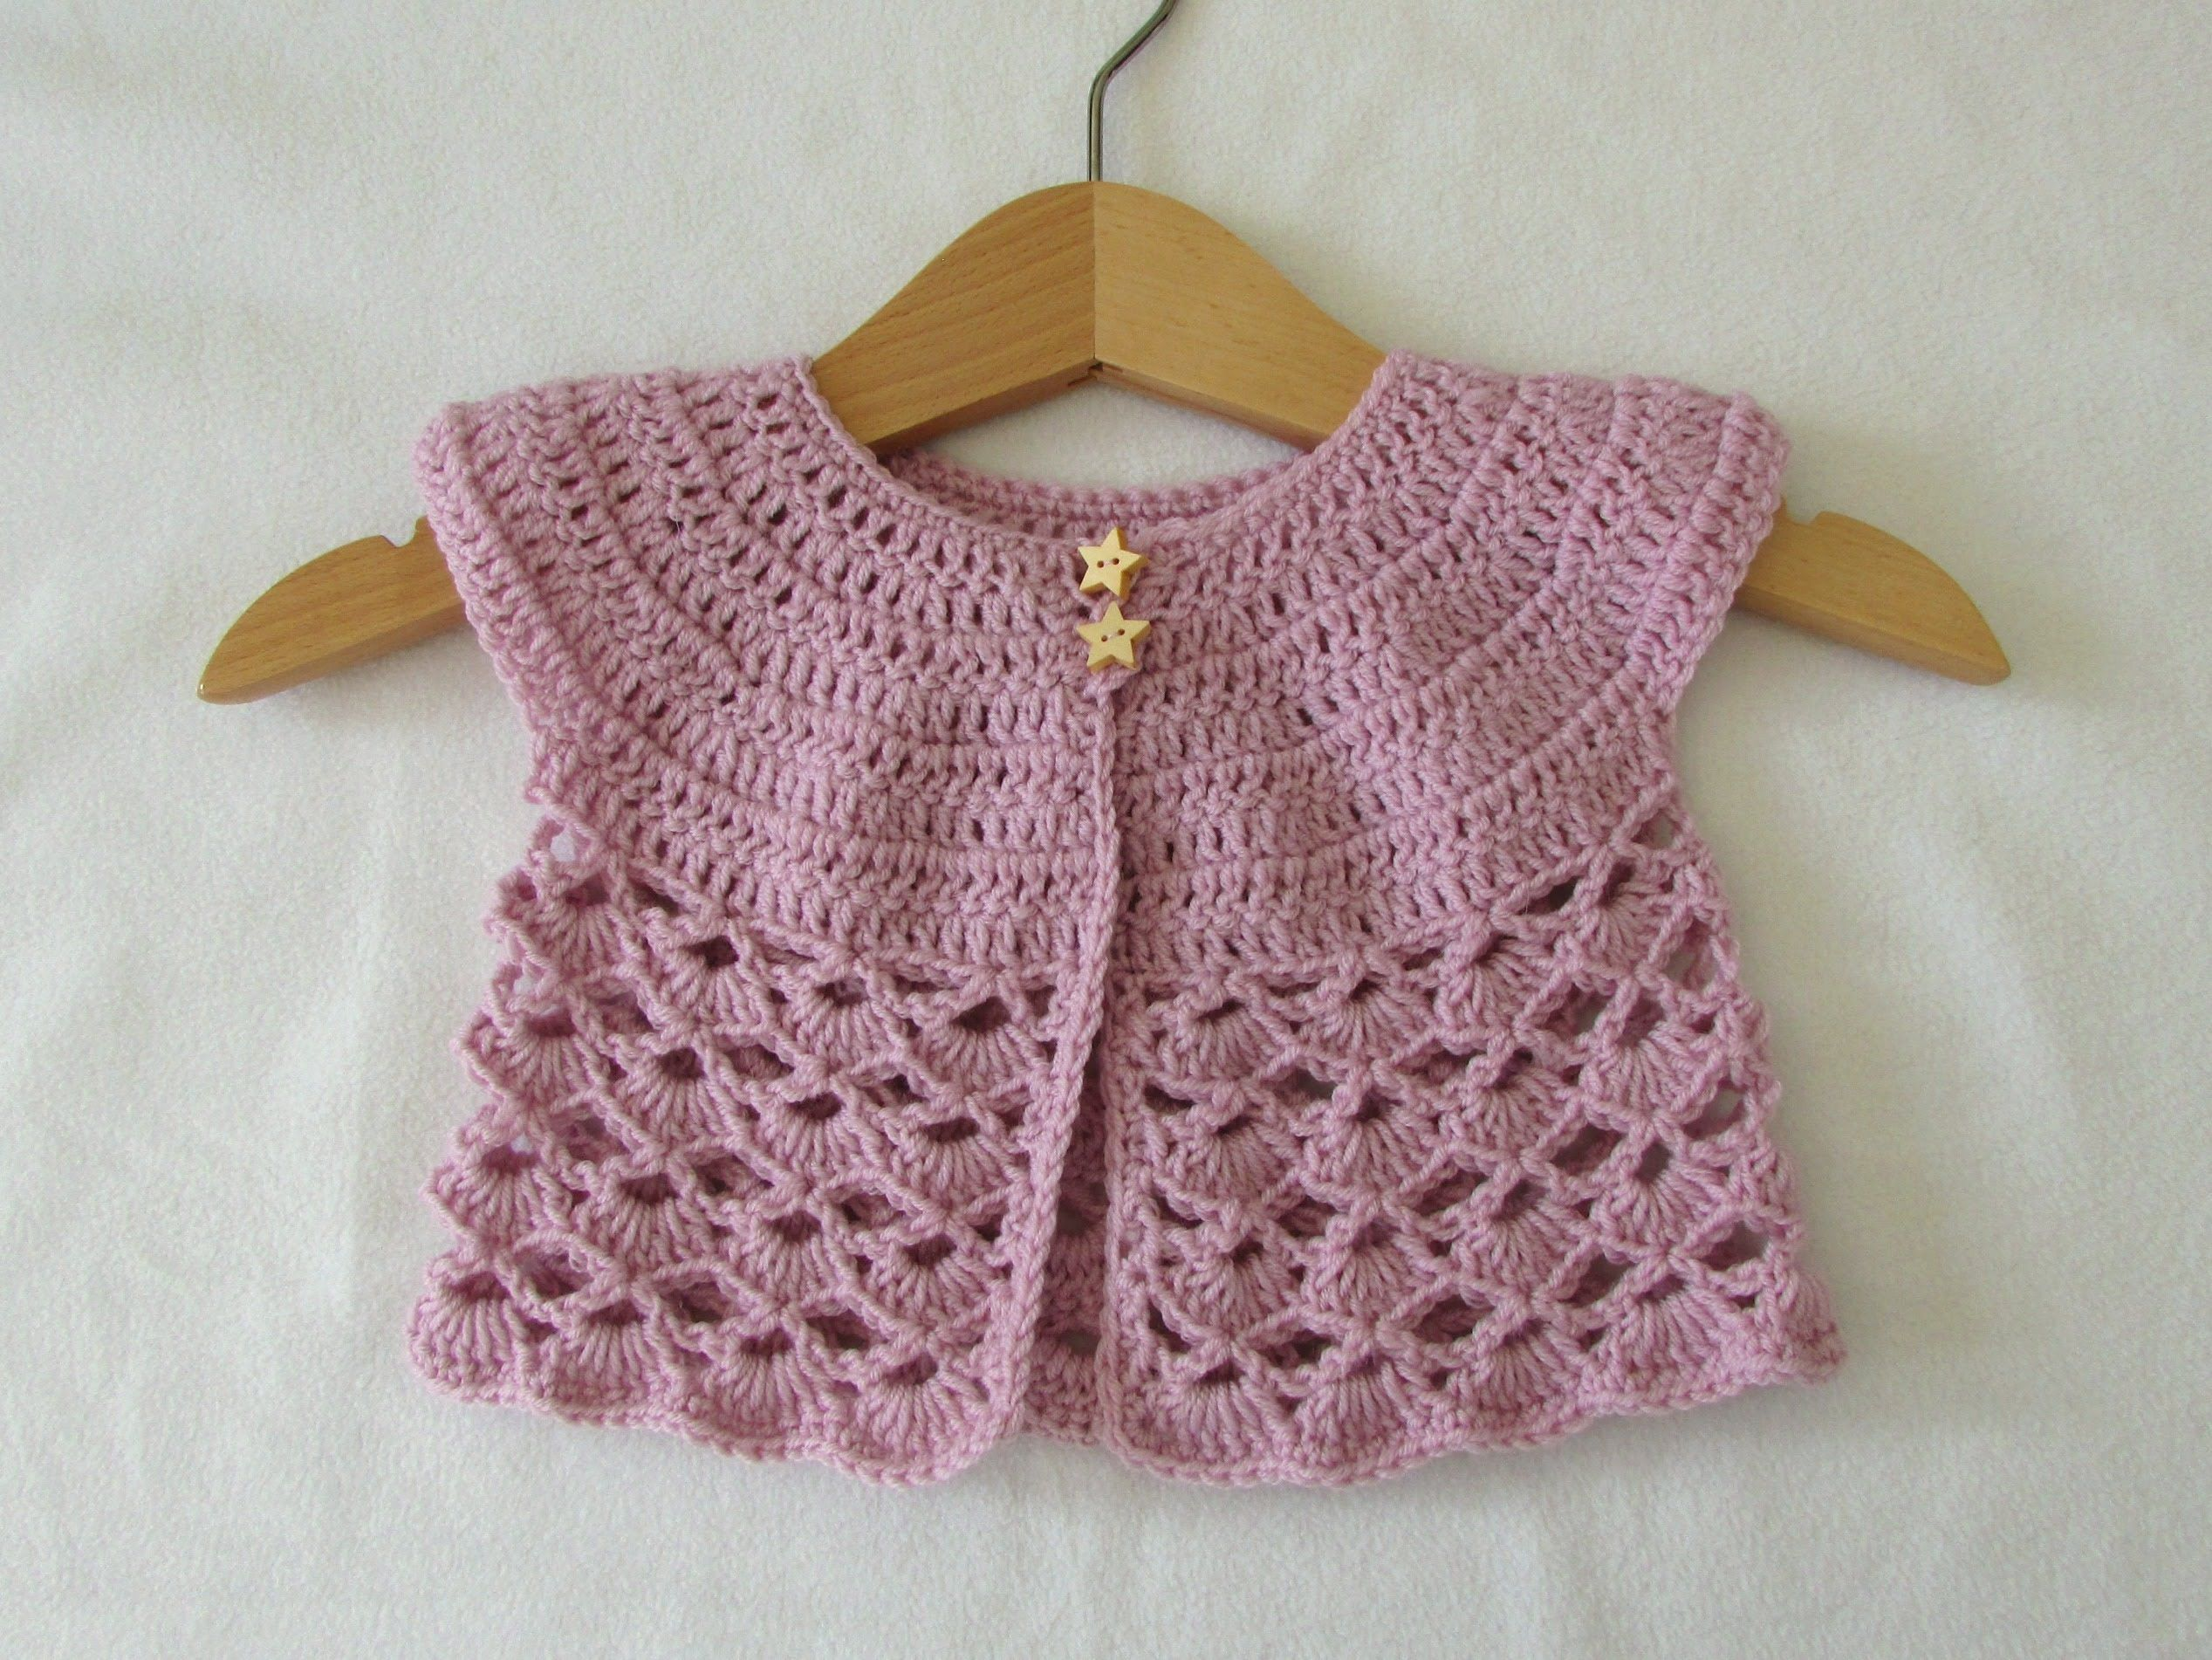 This tutorial will show you how to crochet an easy lace baby this tutorial will show you how to crochet an easy lace baby cardigan sweater this cardigan is suitable for beginners for size 0 3 months use a cro bankloansurffo Image collections